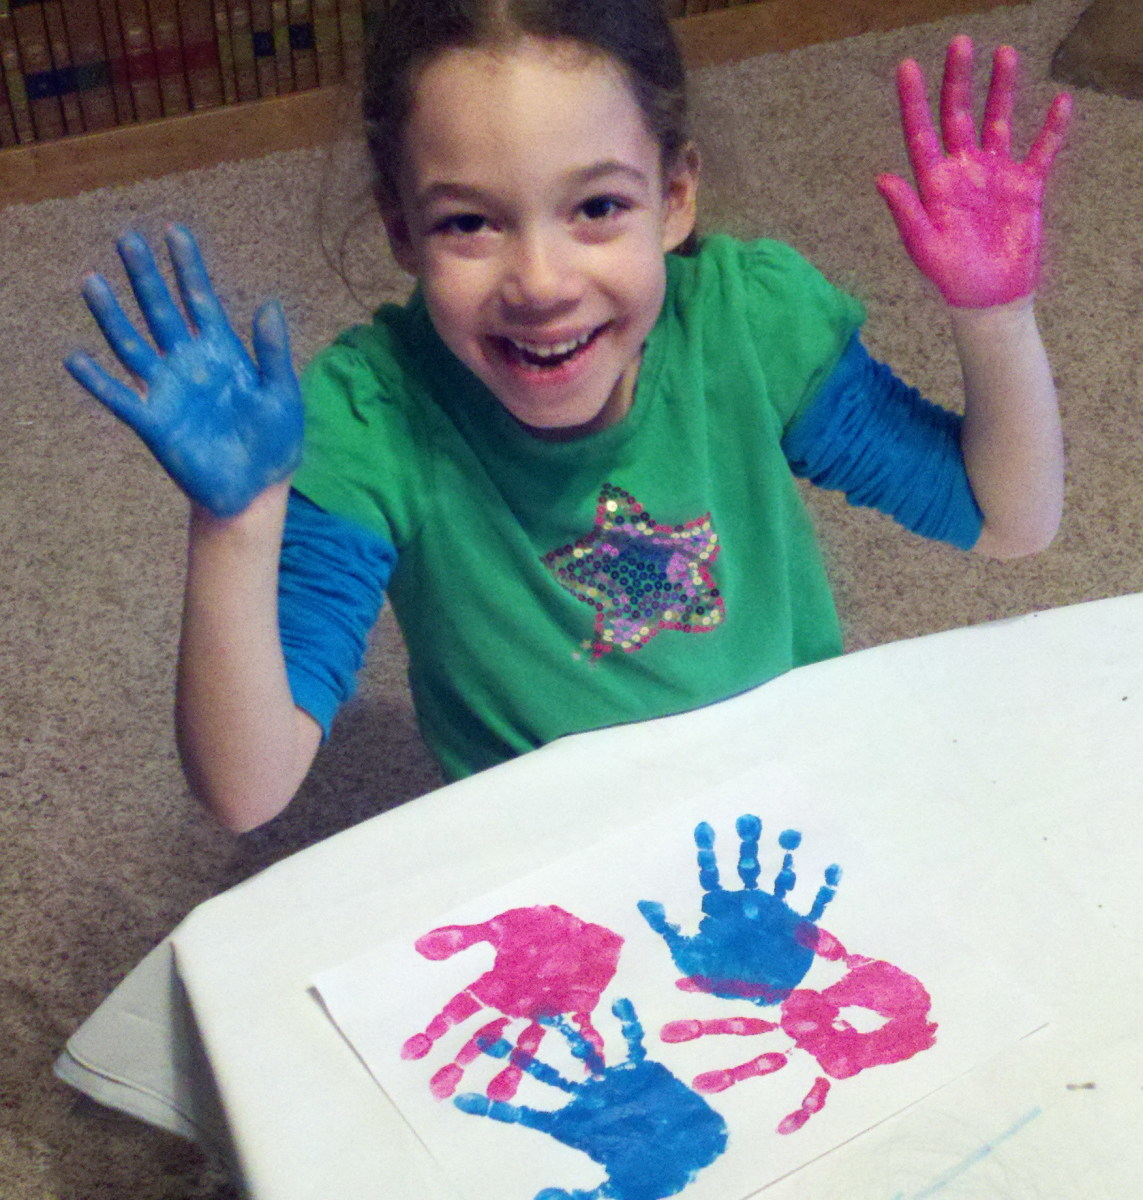 Another sensory experience for your children - painting their hands and decorating the feely tube.